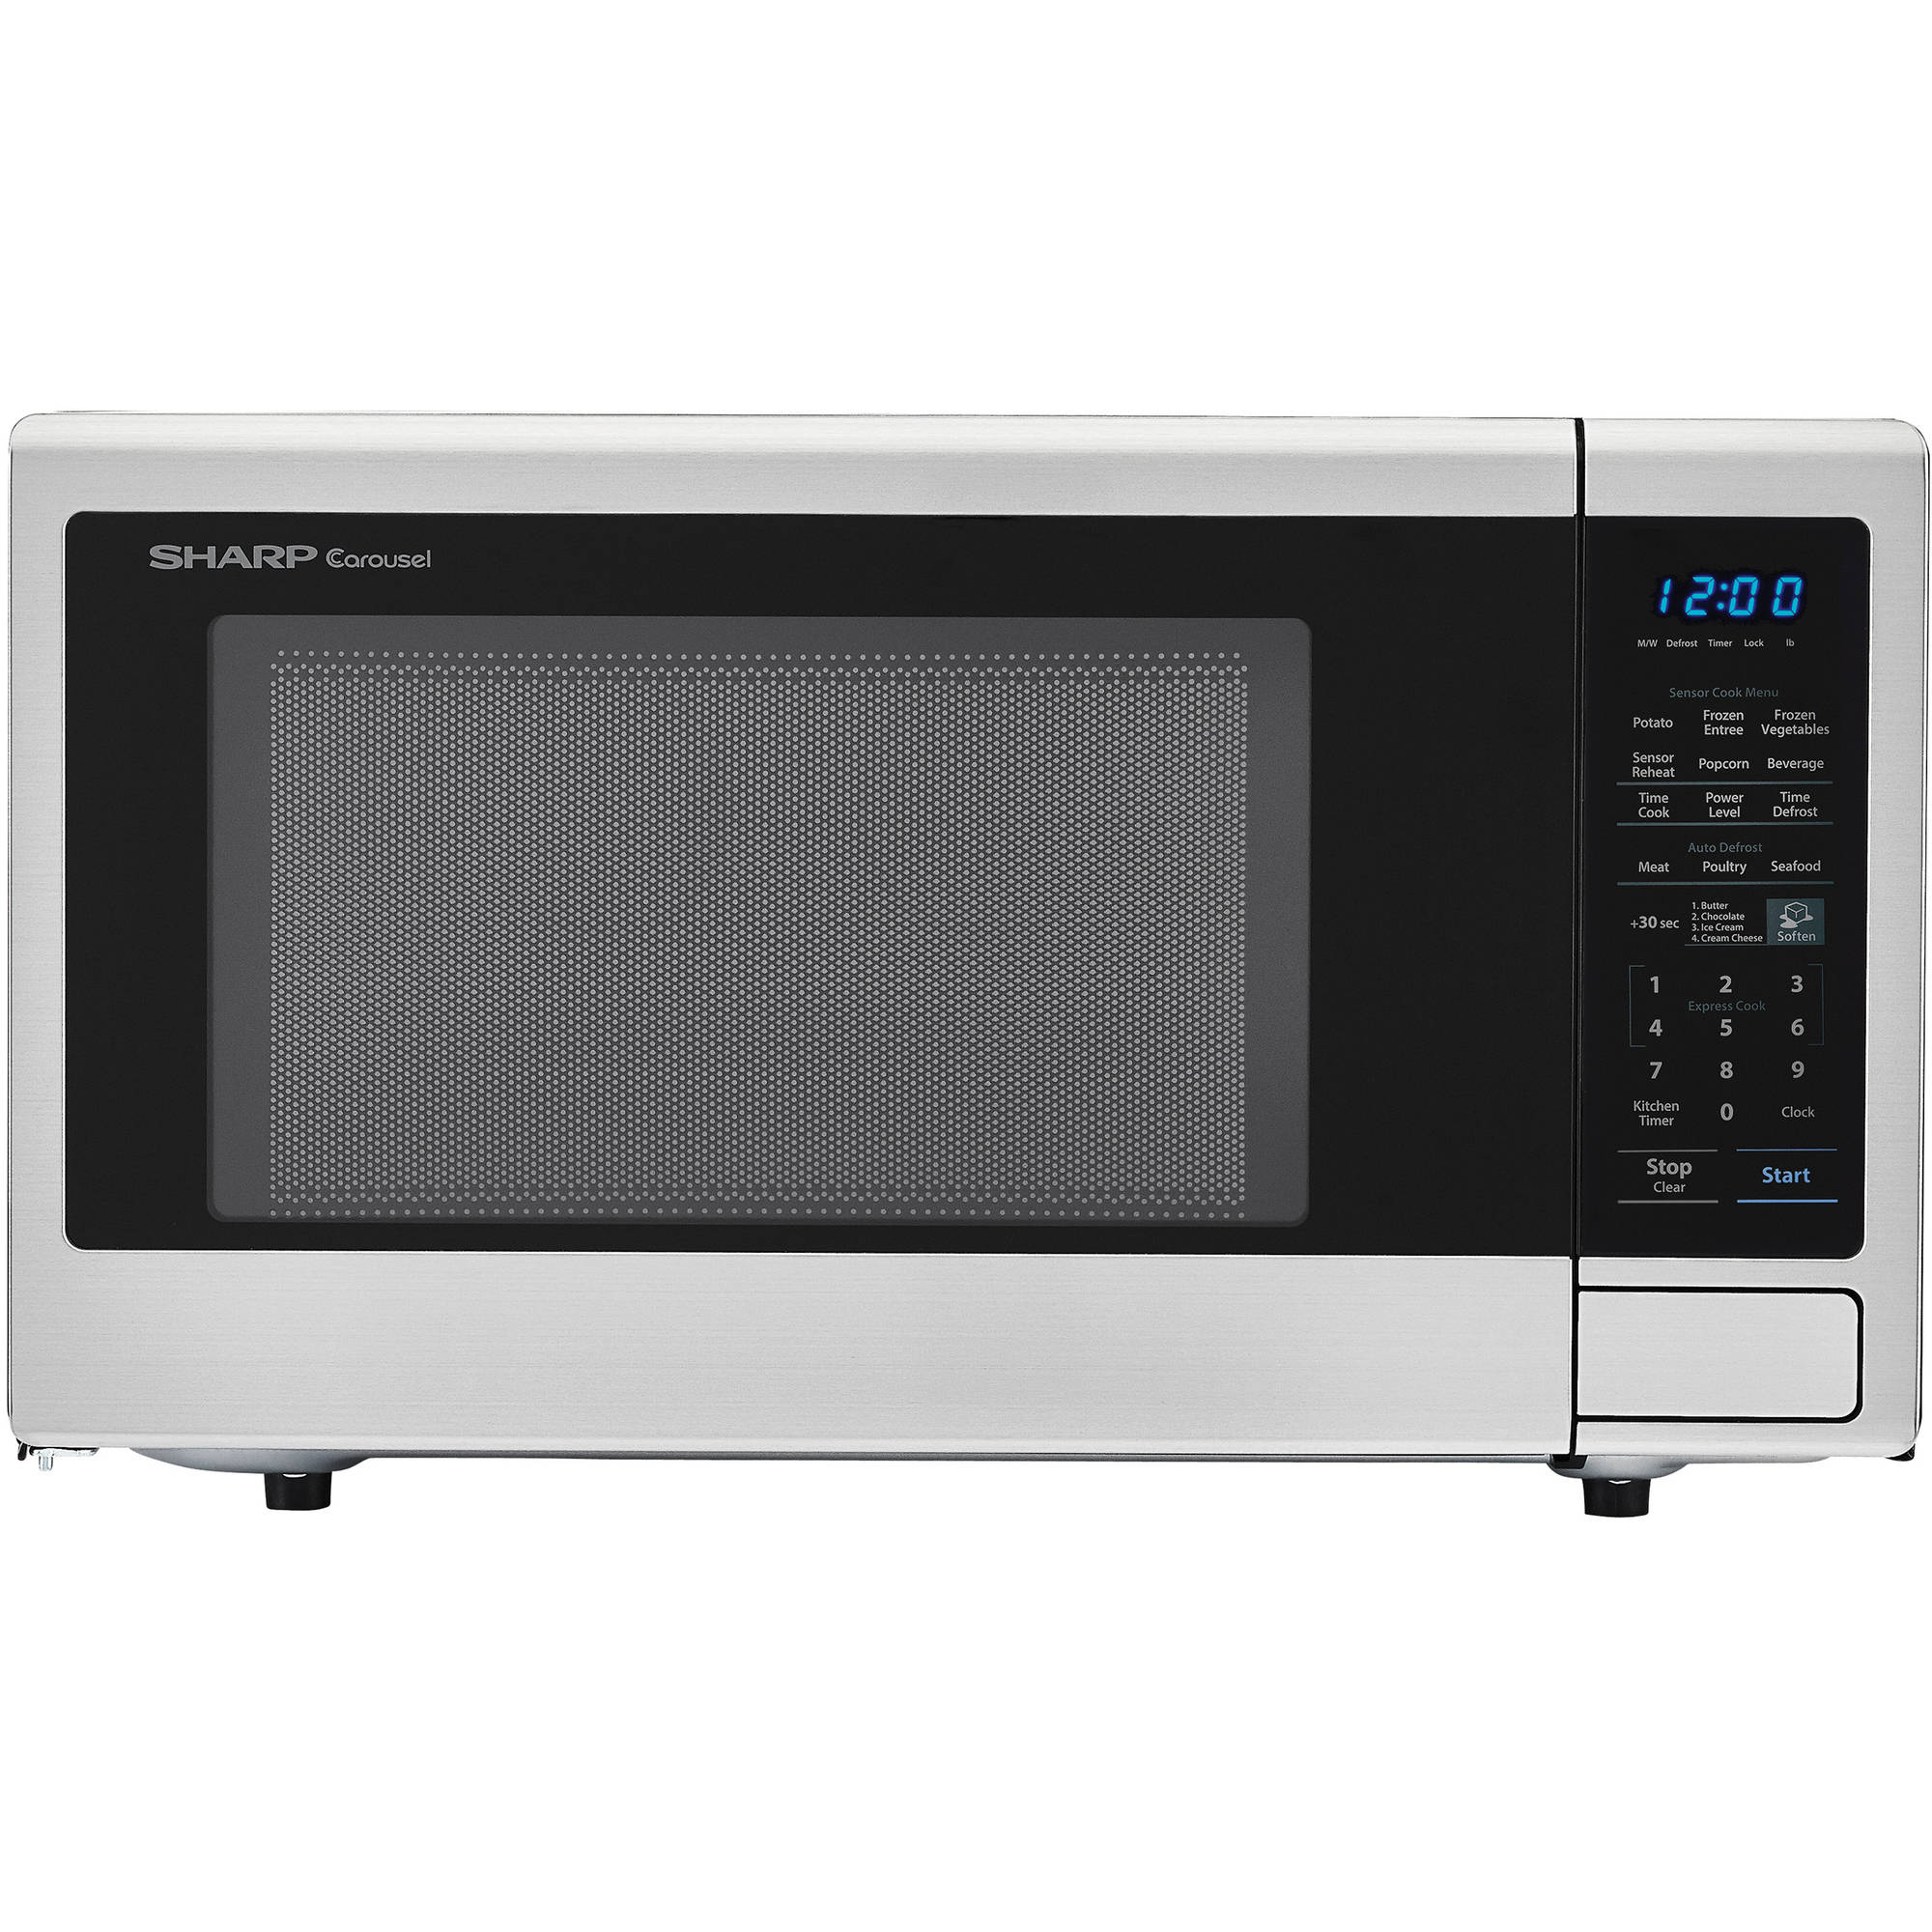 Sharp 1.8 Cu. Ft. 1100W Stainless Steel Microwave